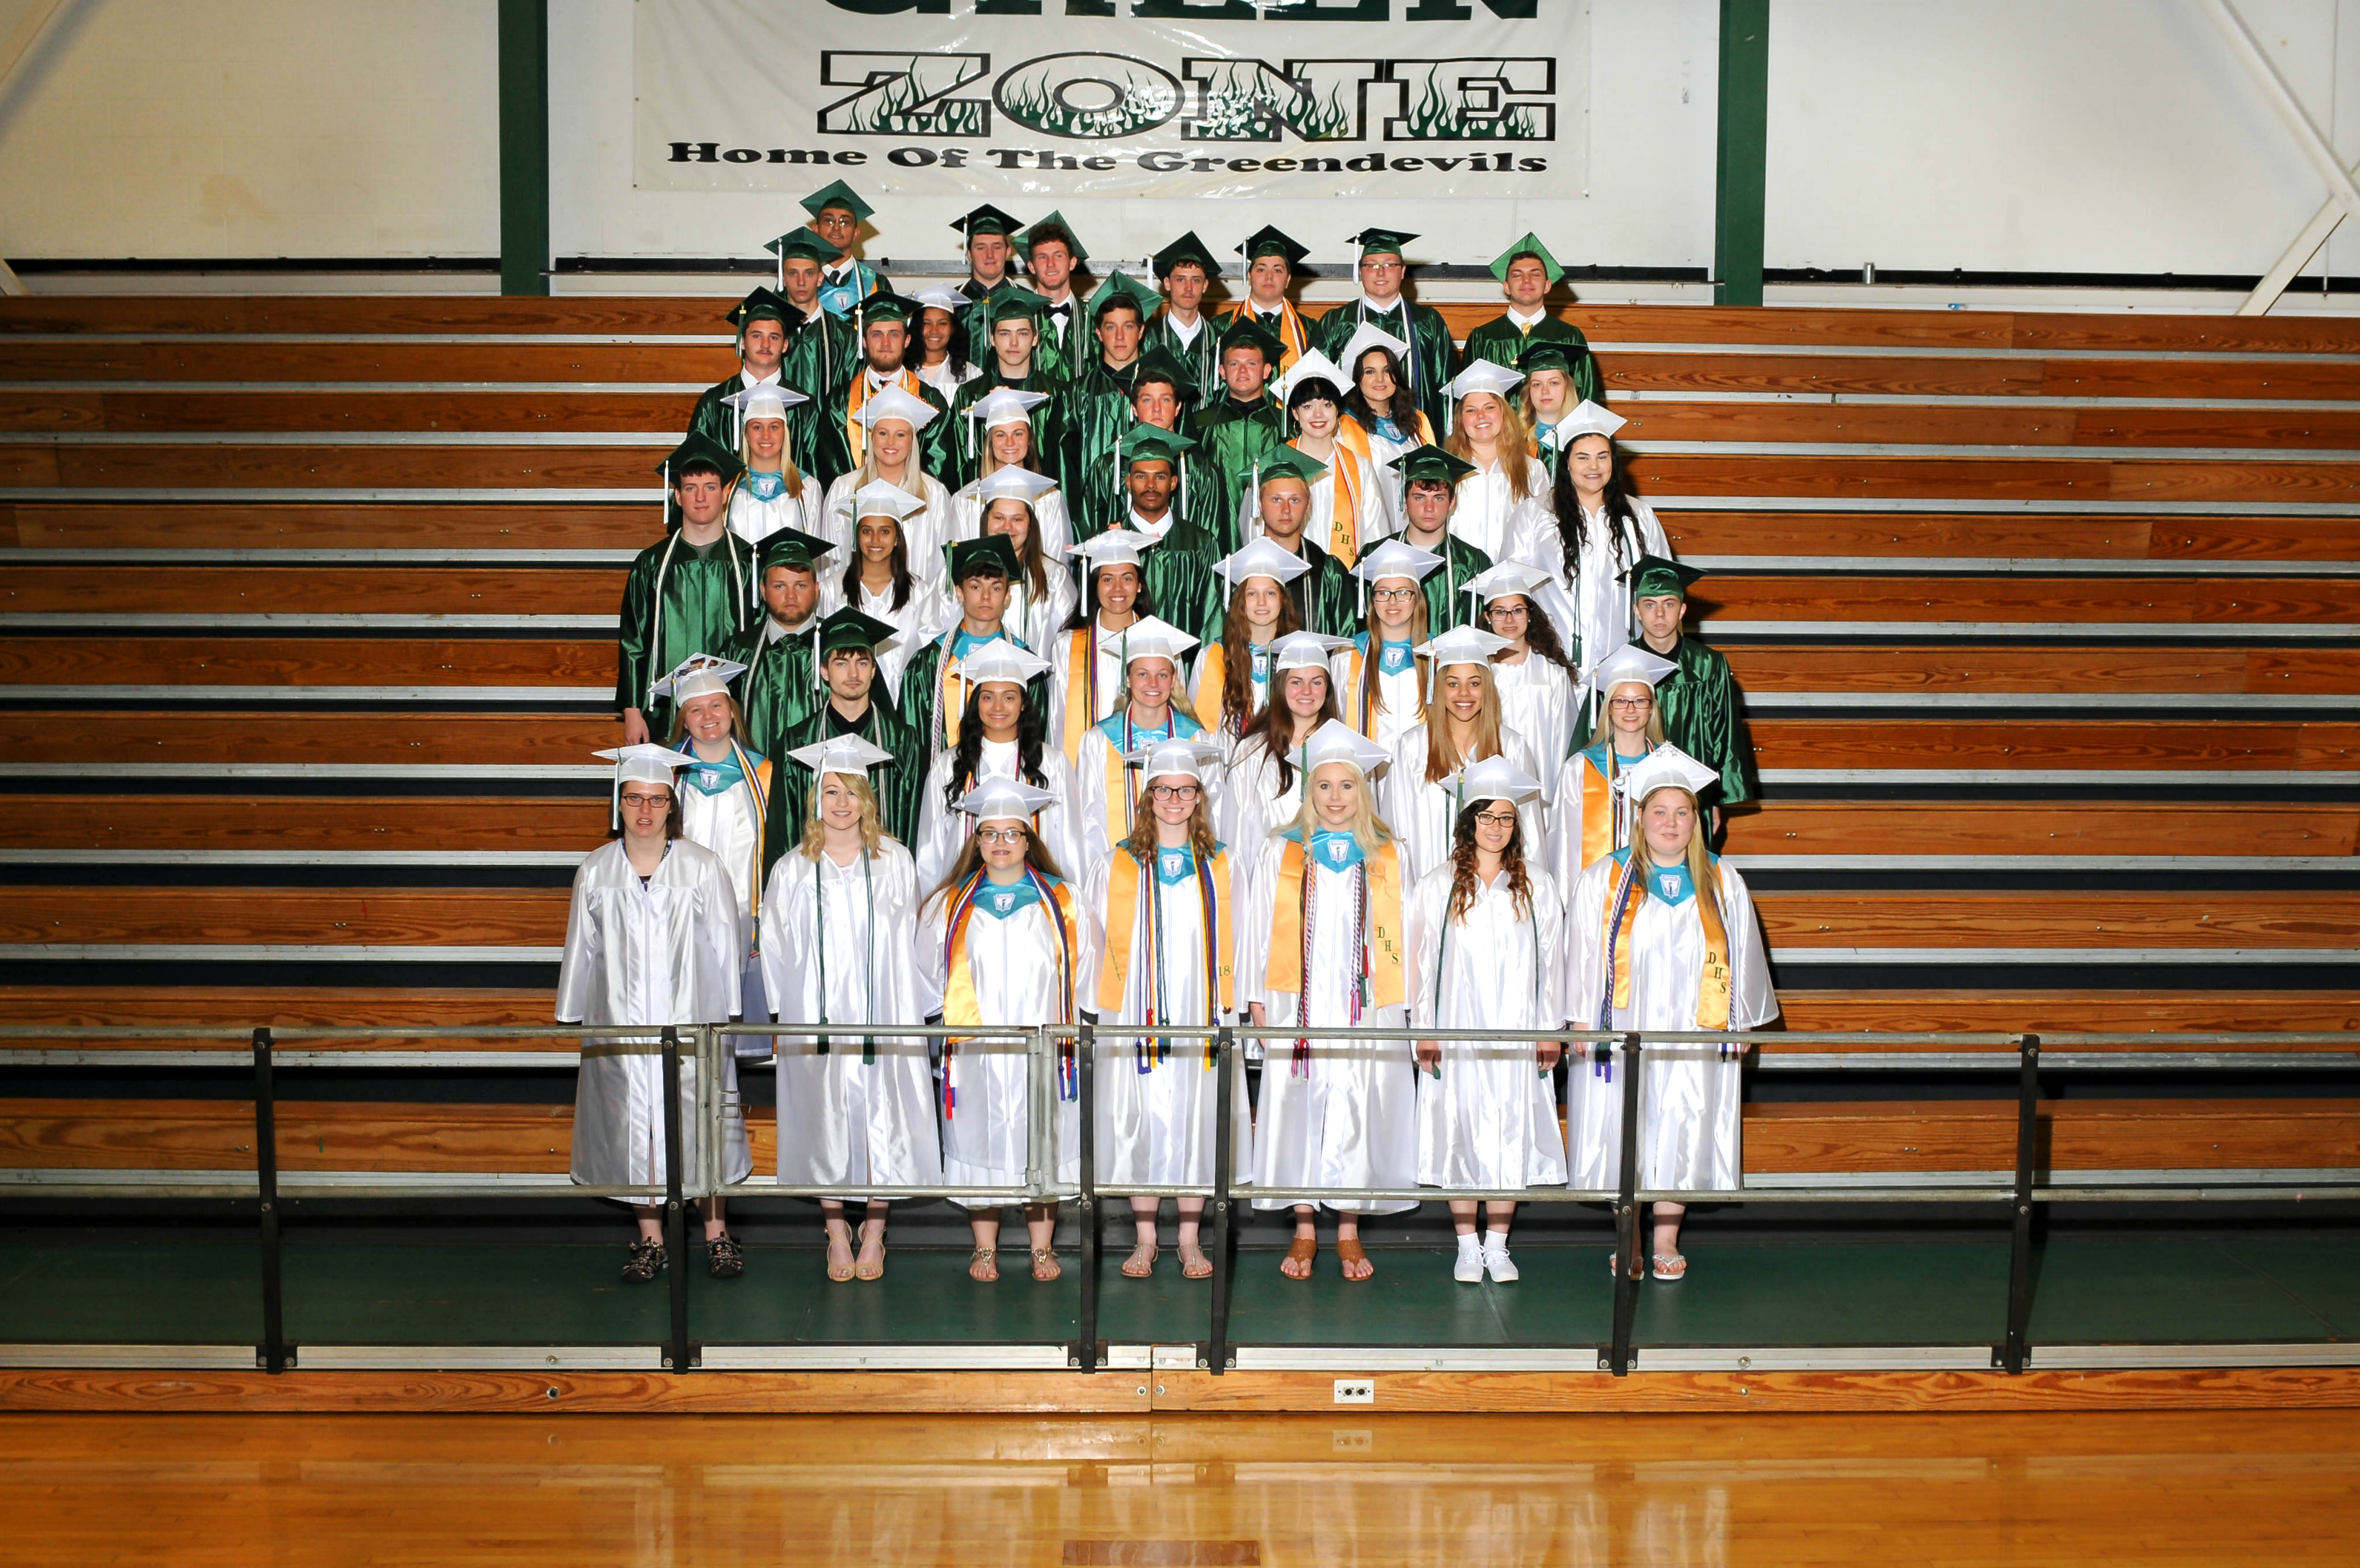 Dayton High School Class of 2018 - Group photo